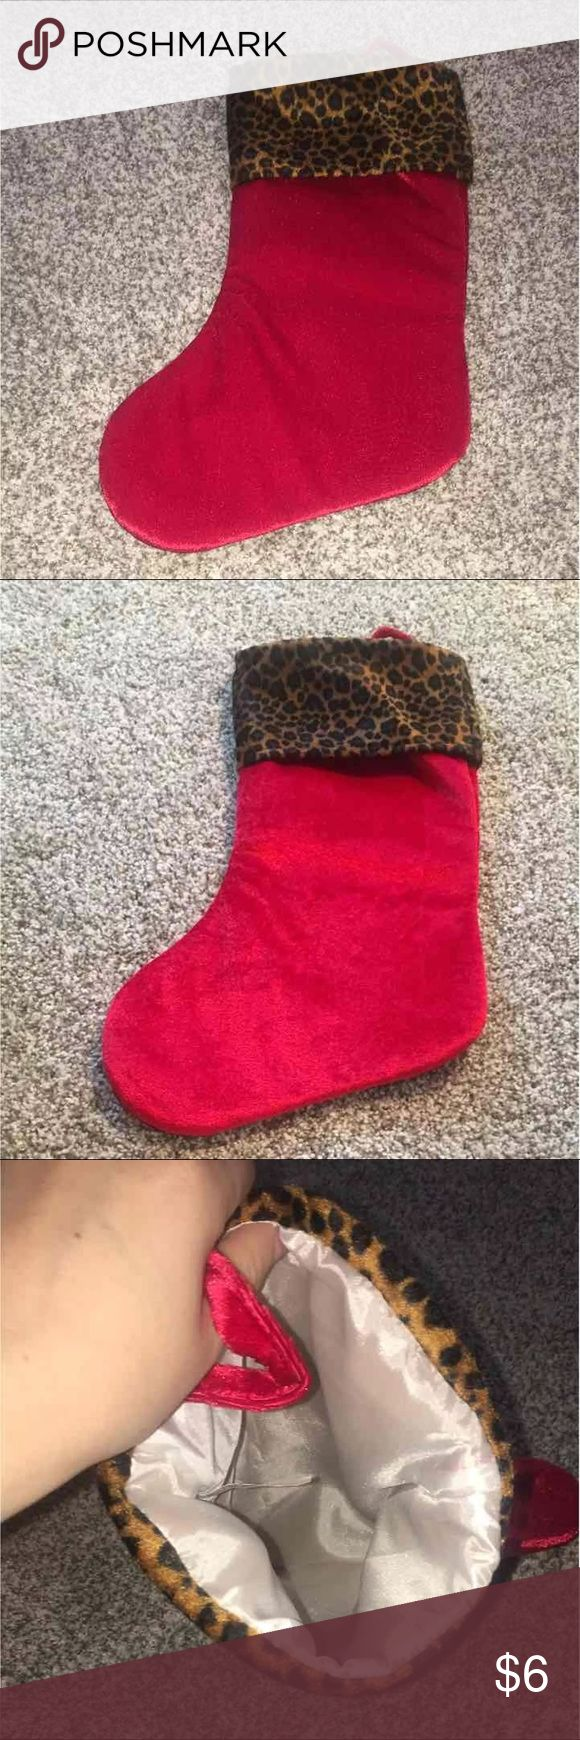 Stocking Leopard and red stocking. Used once. Like new. Pics with and without flash Accessories